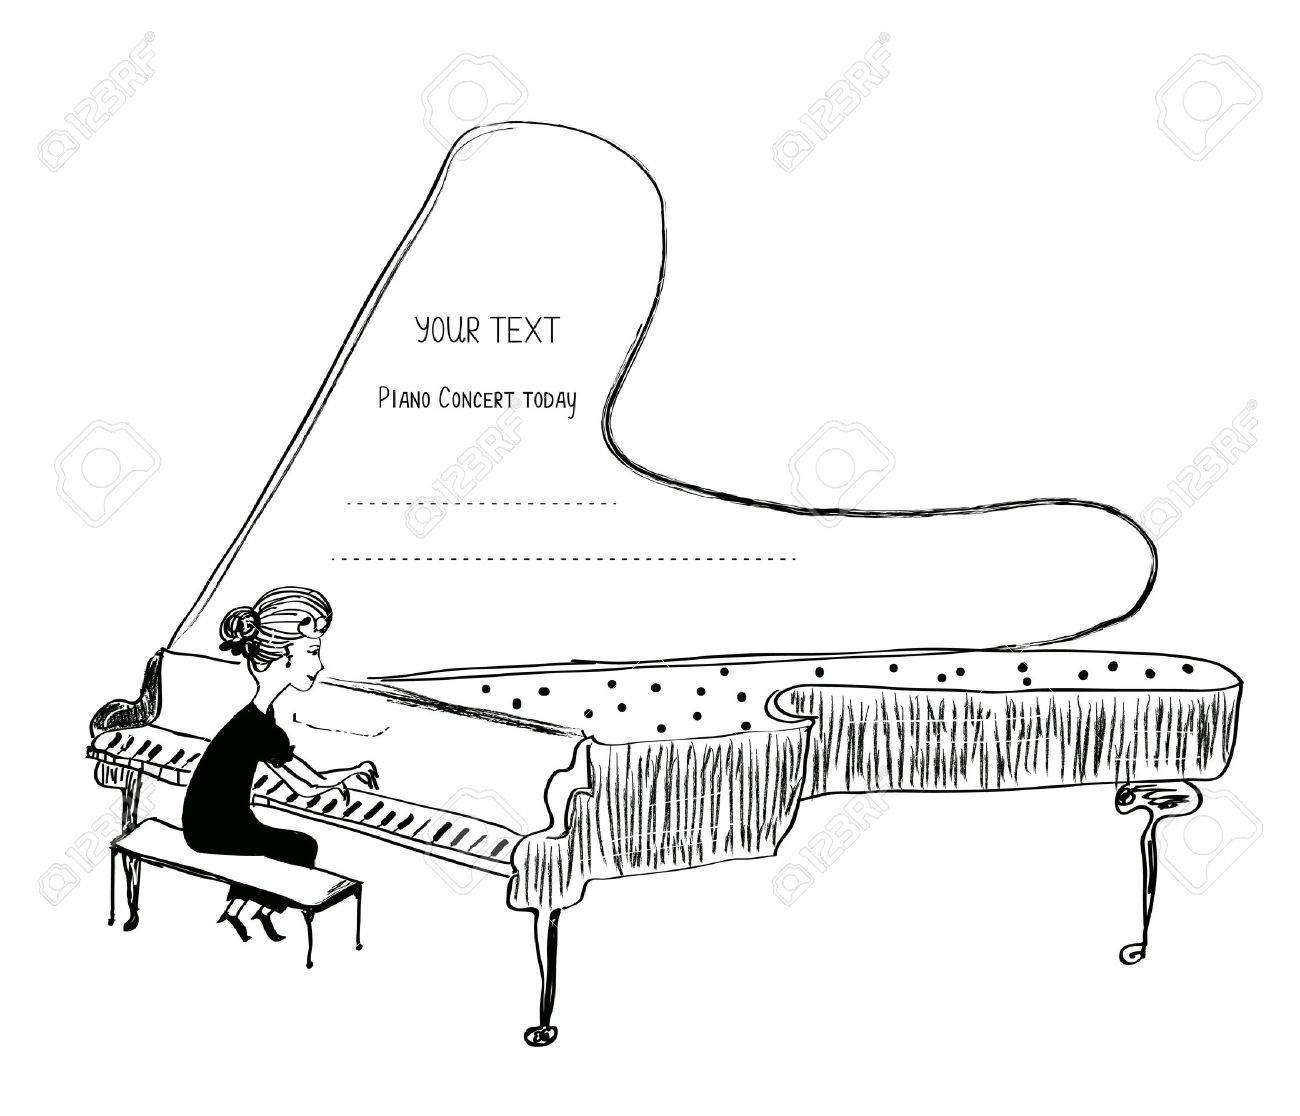 Girl playing piano sketch - background for a musical concert, vector illustration - 60908202